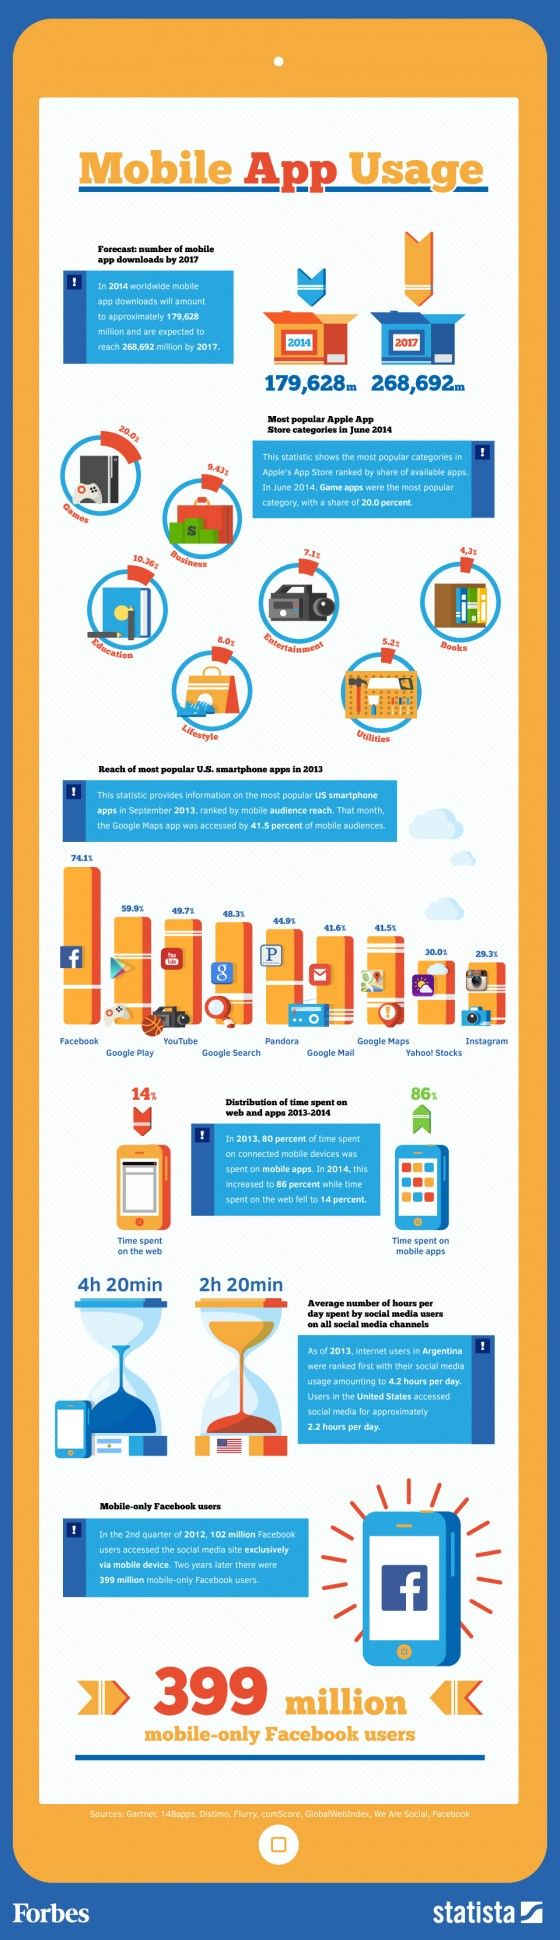 Infographic - Mobile App Usage By The Numbers via Forbes